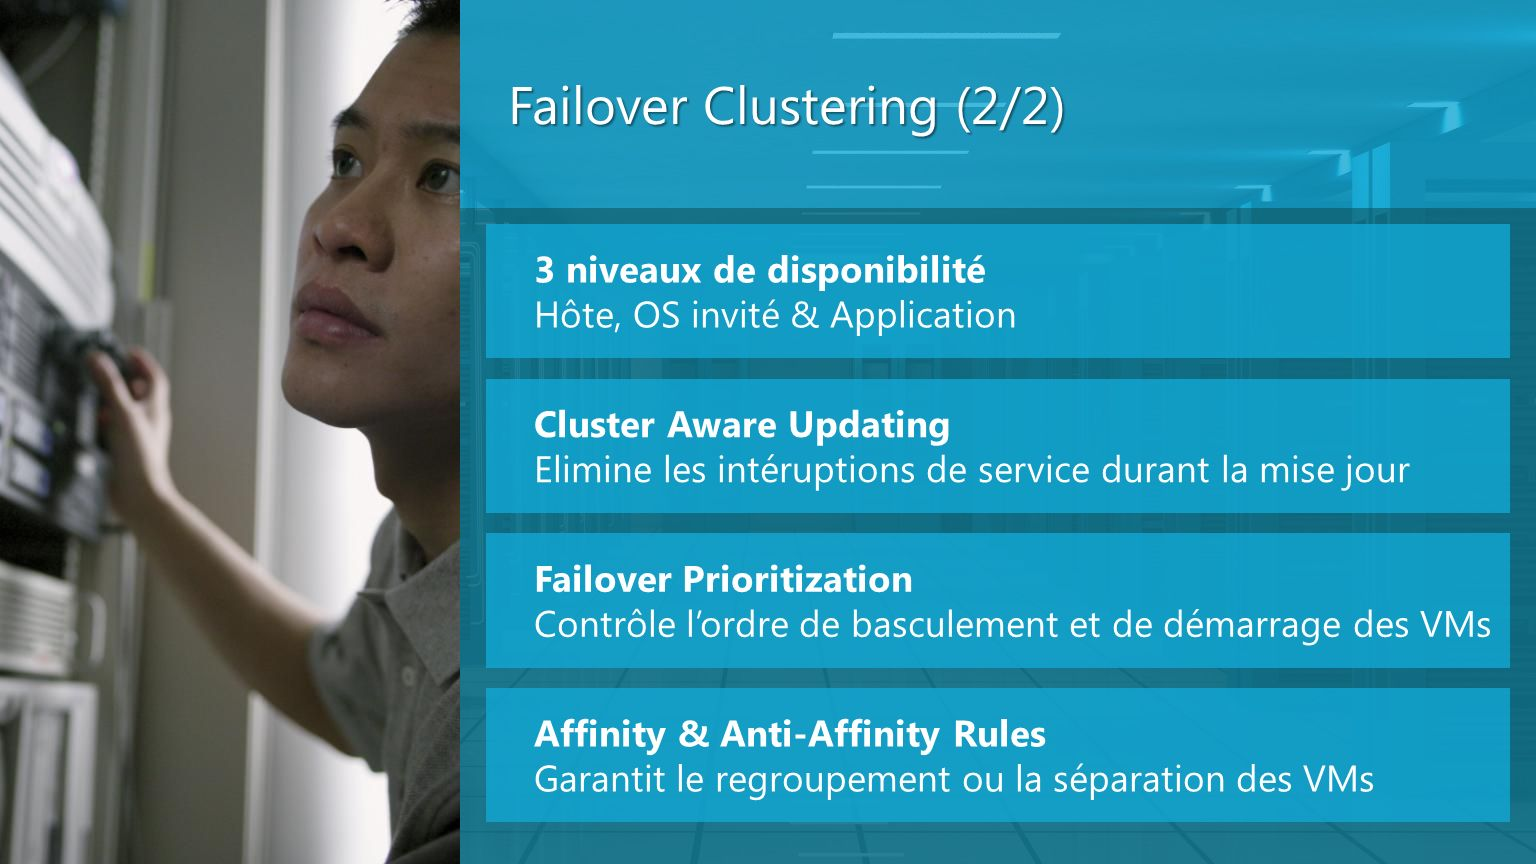 Failover Clustering (2/2)